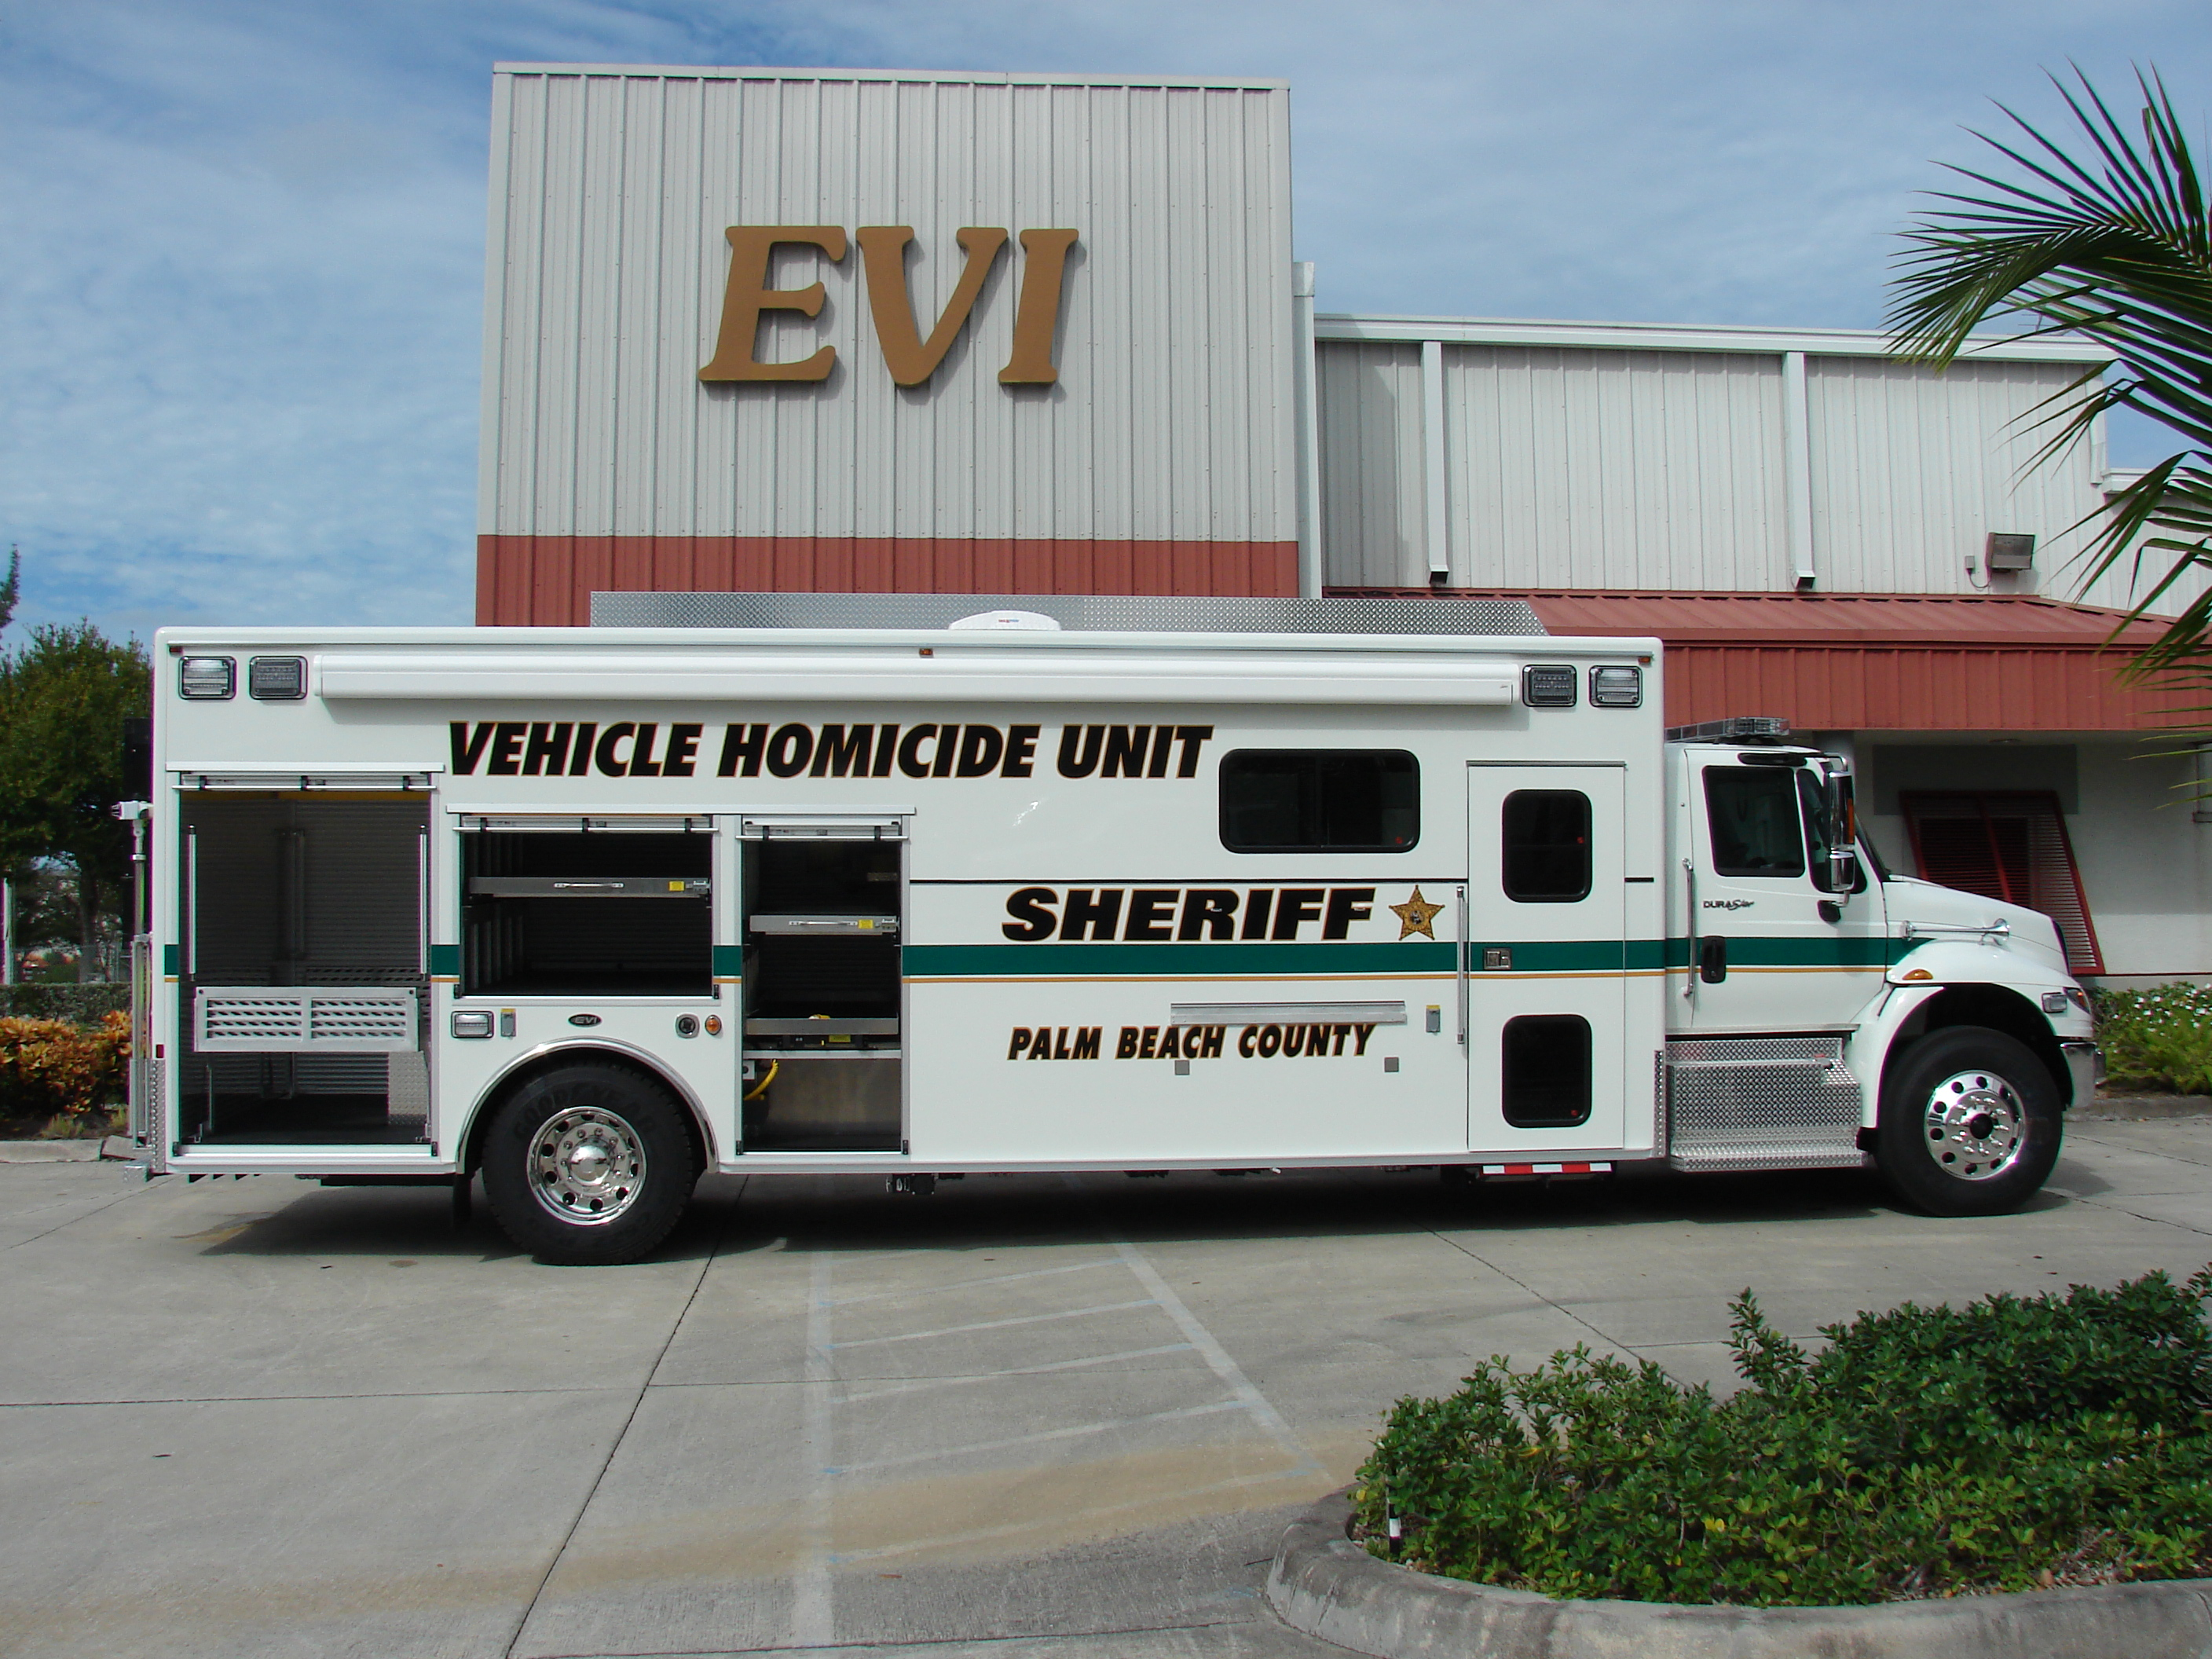 25-Ft Homicide Investigation Vehicle